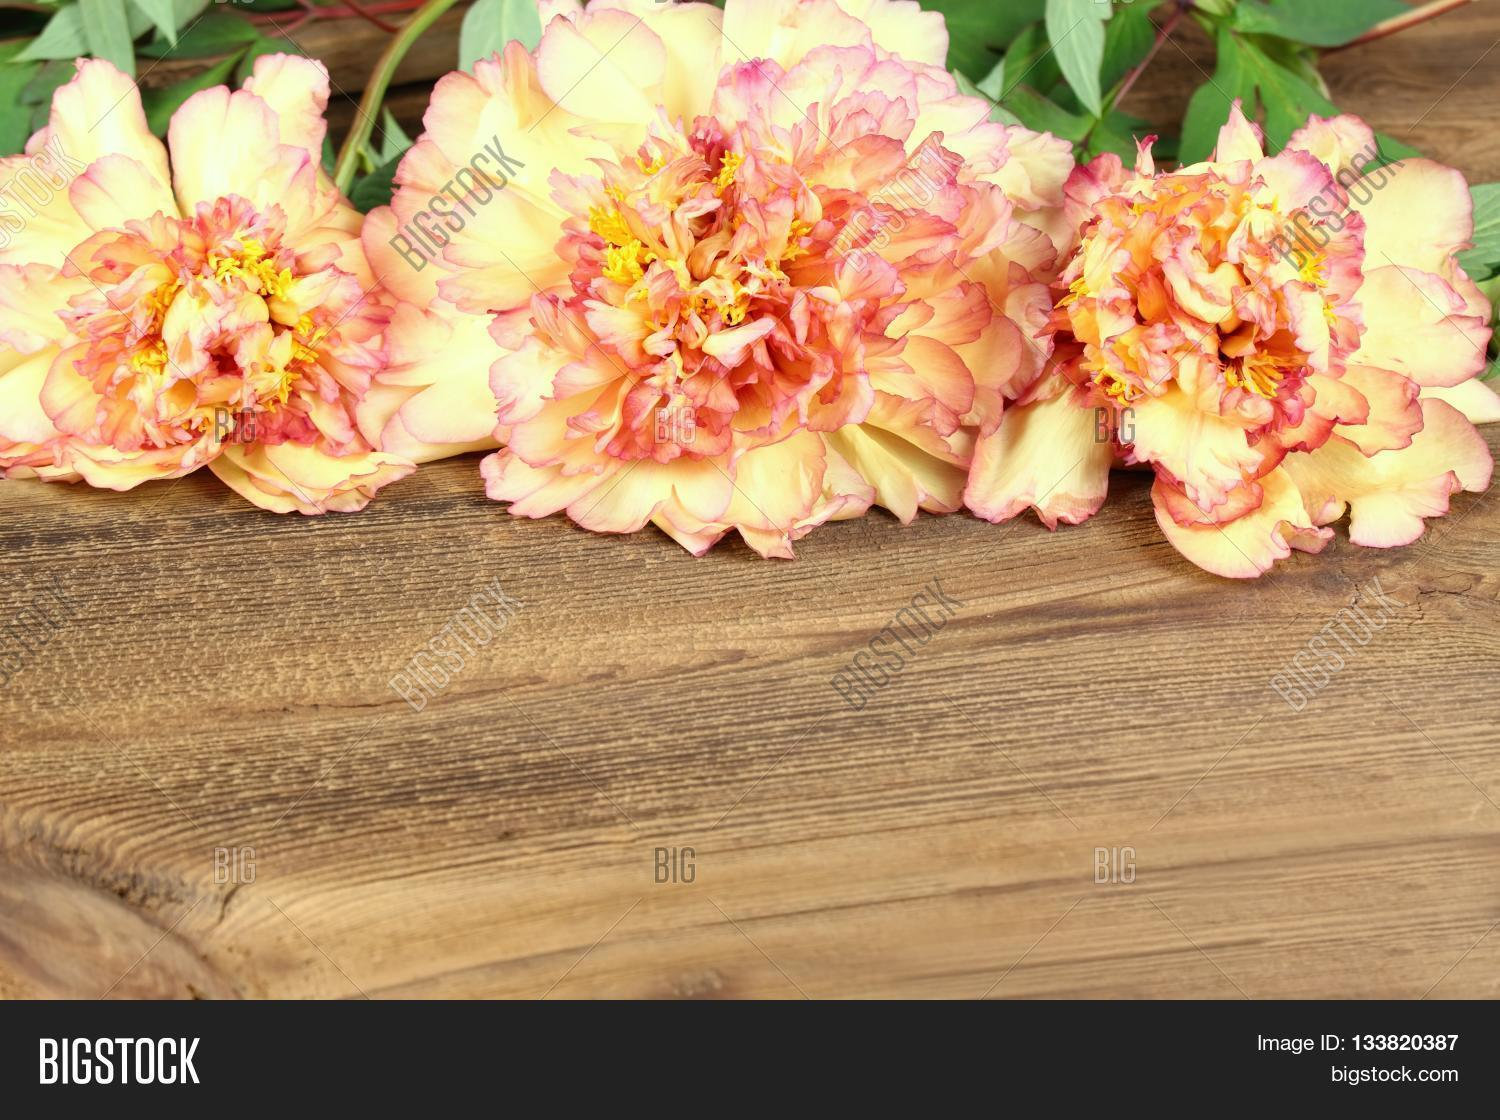 Peony Background Image Photo Free Trial Bigstock